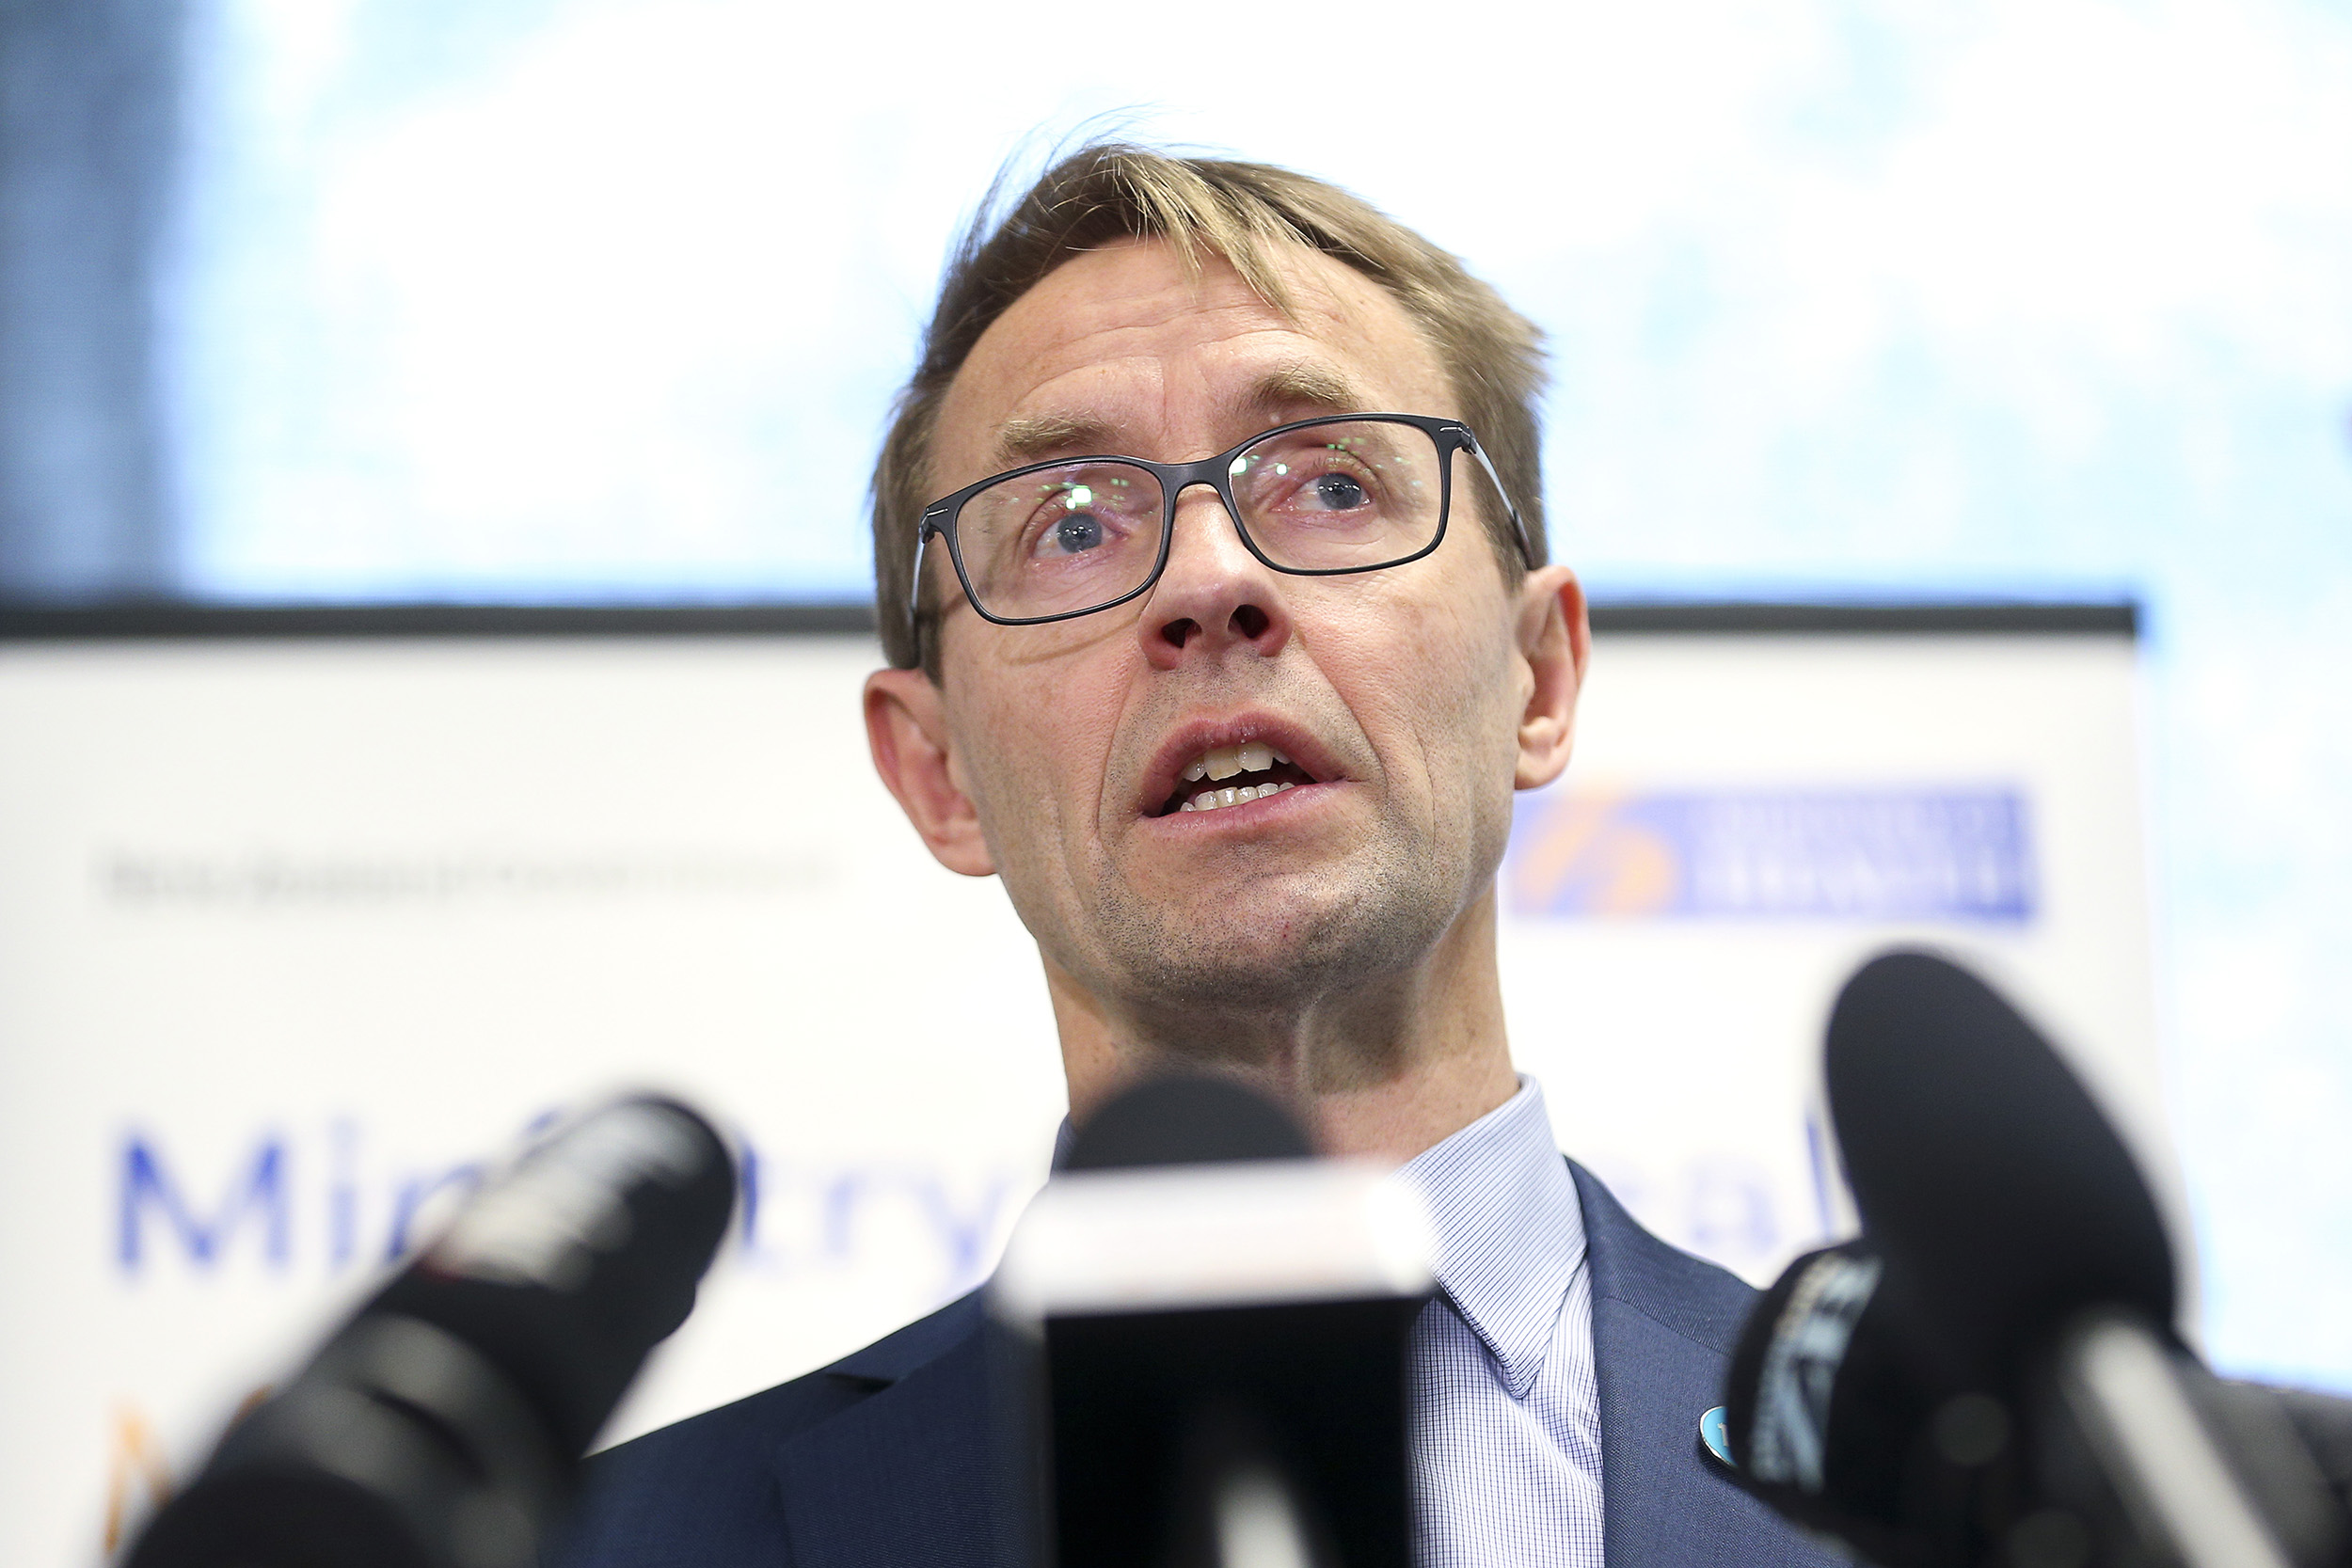 Director-General of Health Dr. Ashley Bloomfield speaks to media during a press conference at the Ministry of Health on August 17, in Wellington, New Zealand.